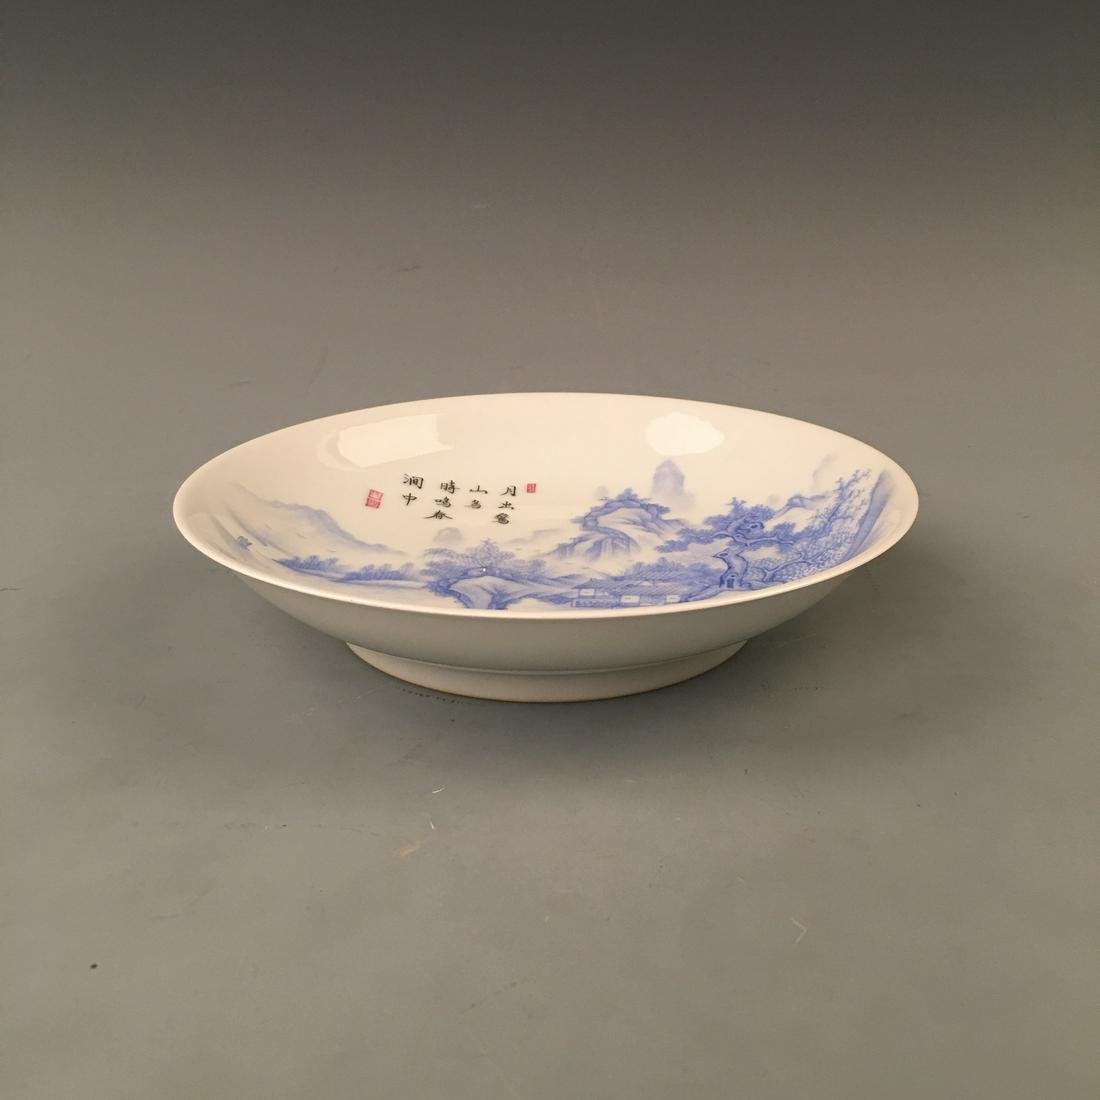 Chinese Blue and White Plate with Yongzhen Mark